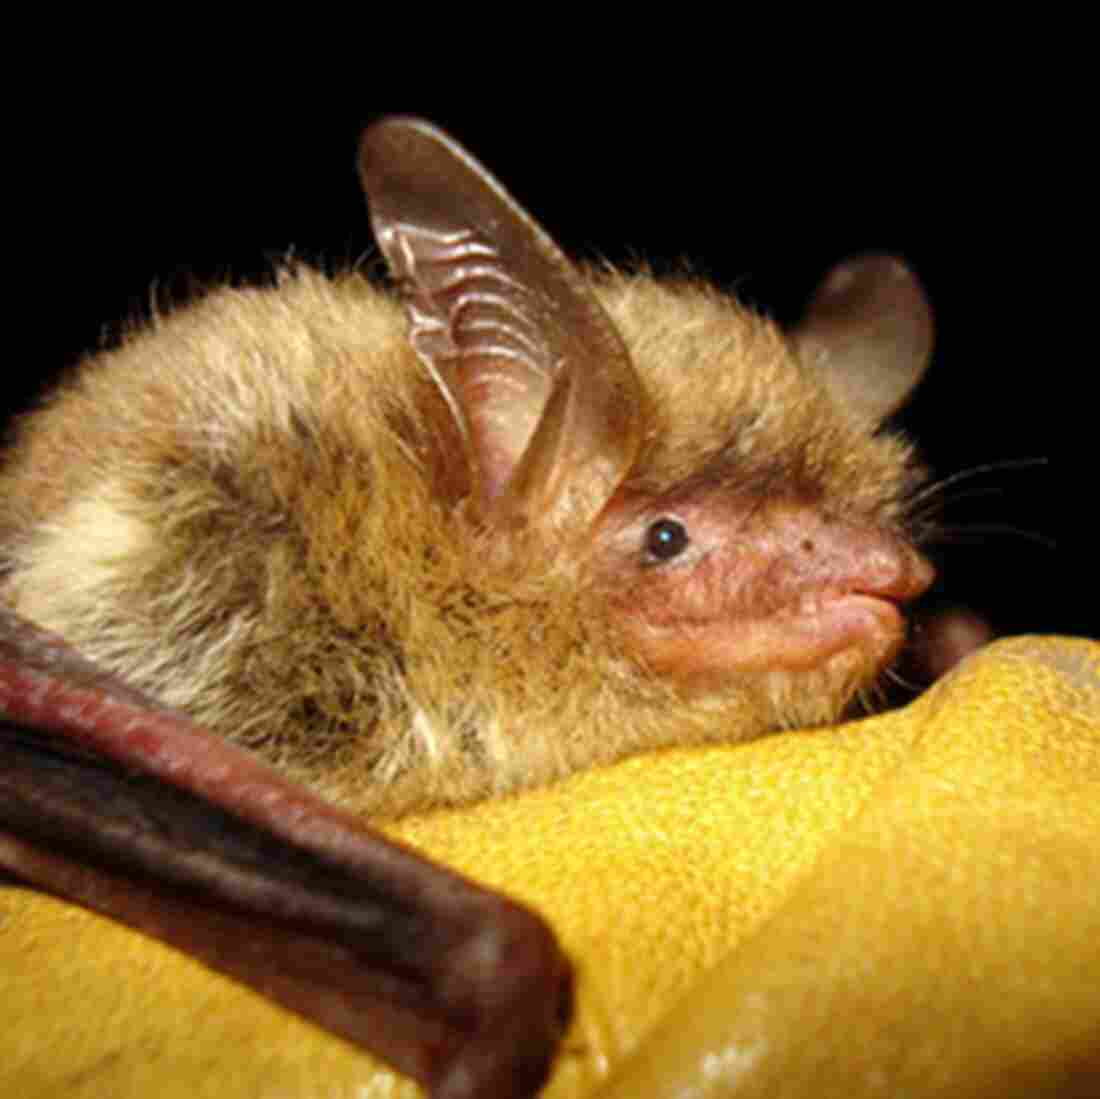 Federal Government Protects Bat, Angers Industry